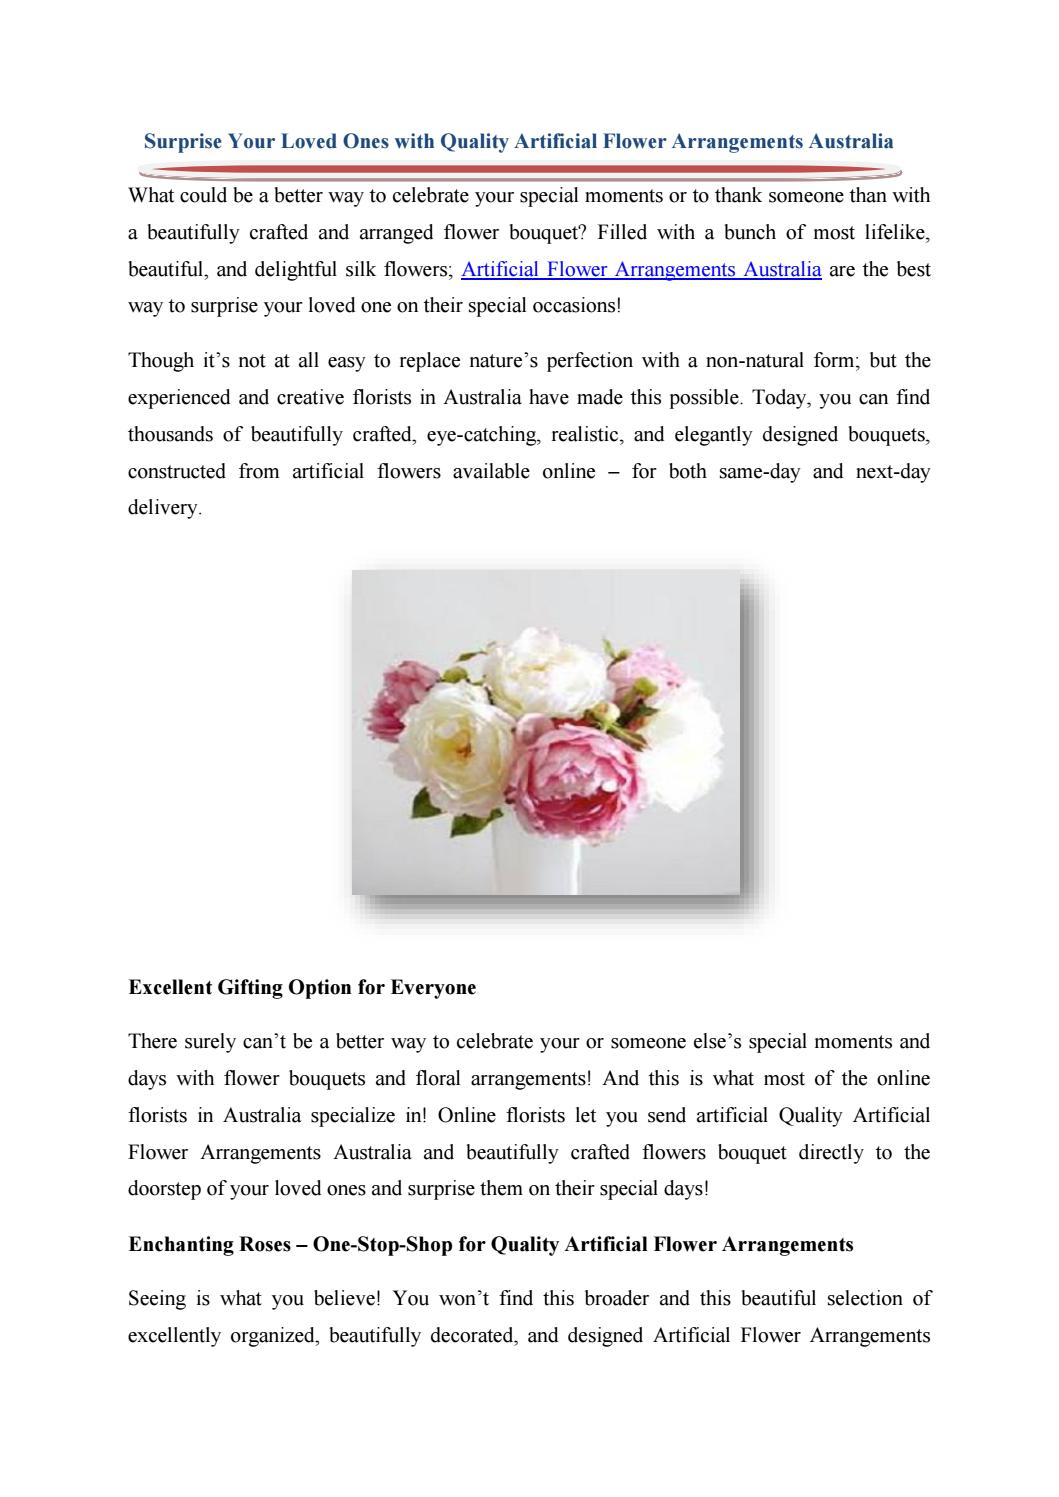 Surprise Your Loved Ones With Quality Artificial Flower Arrangements